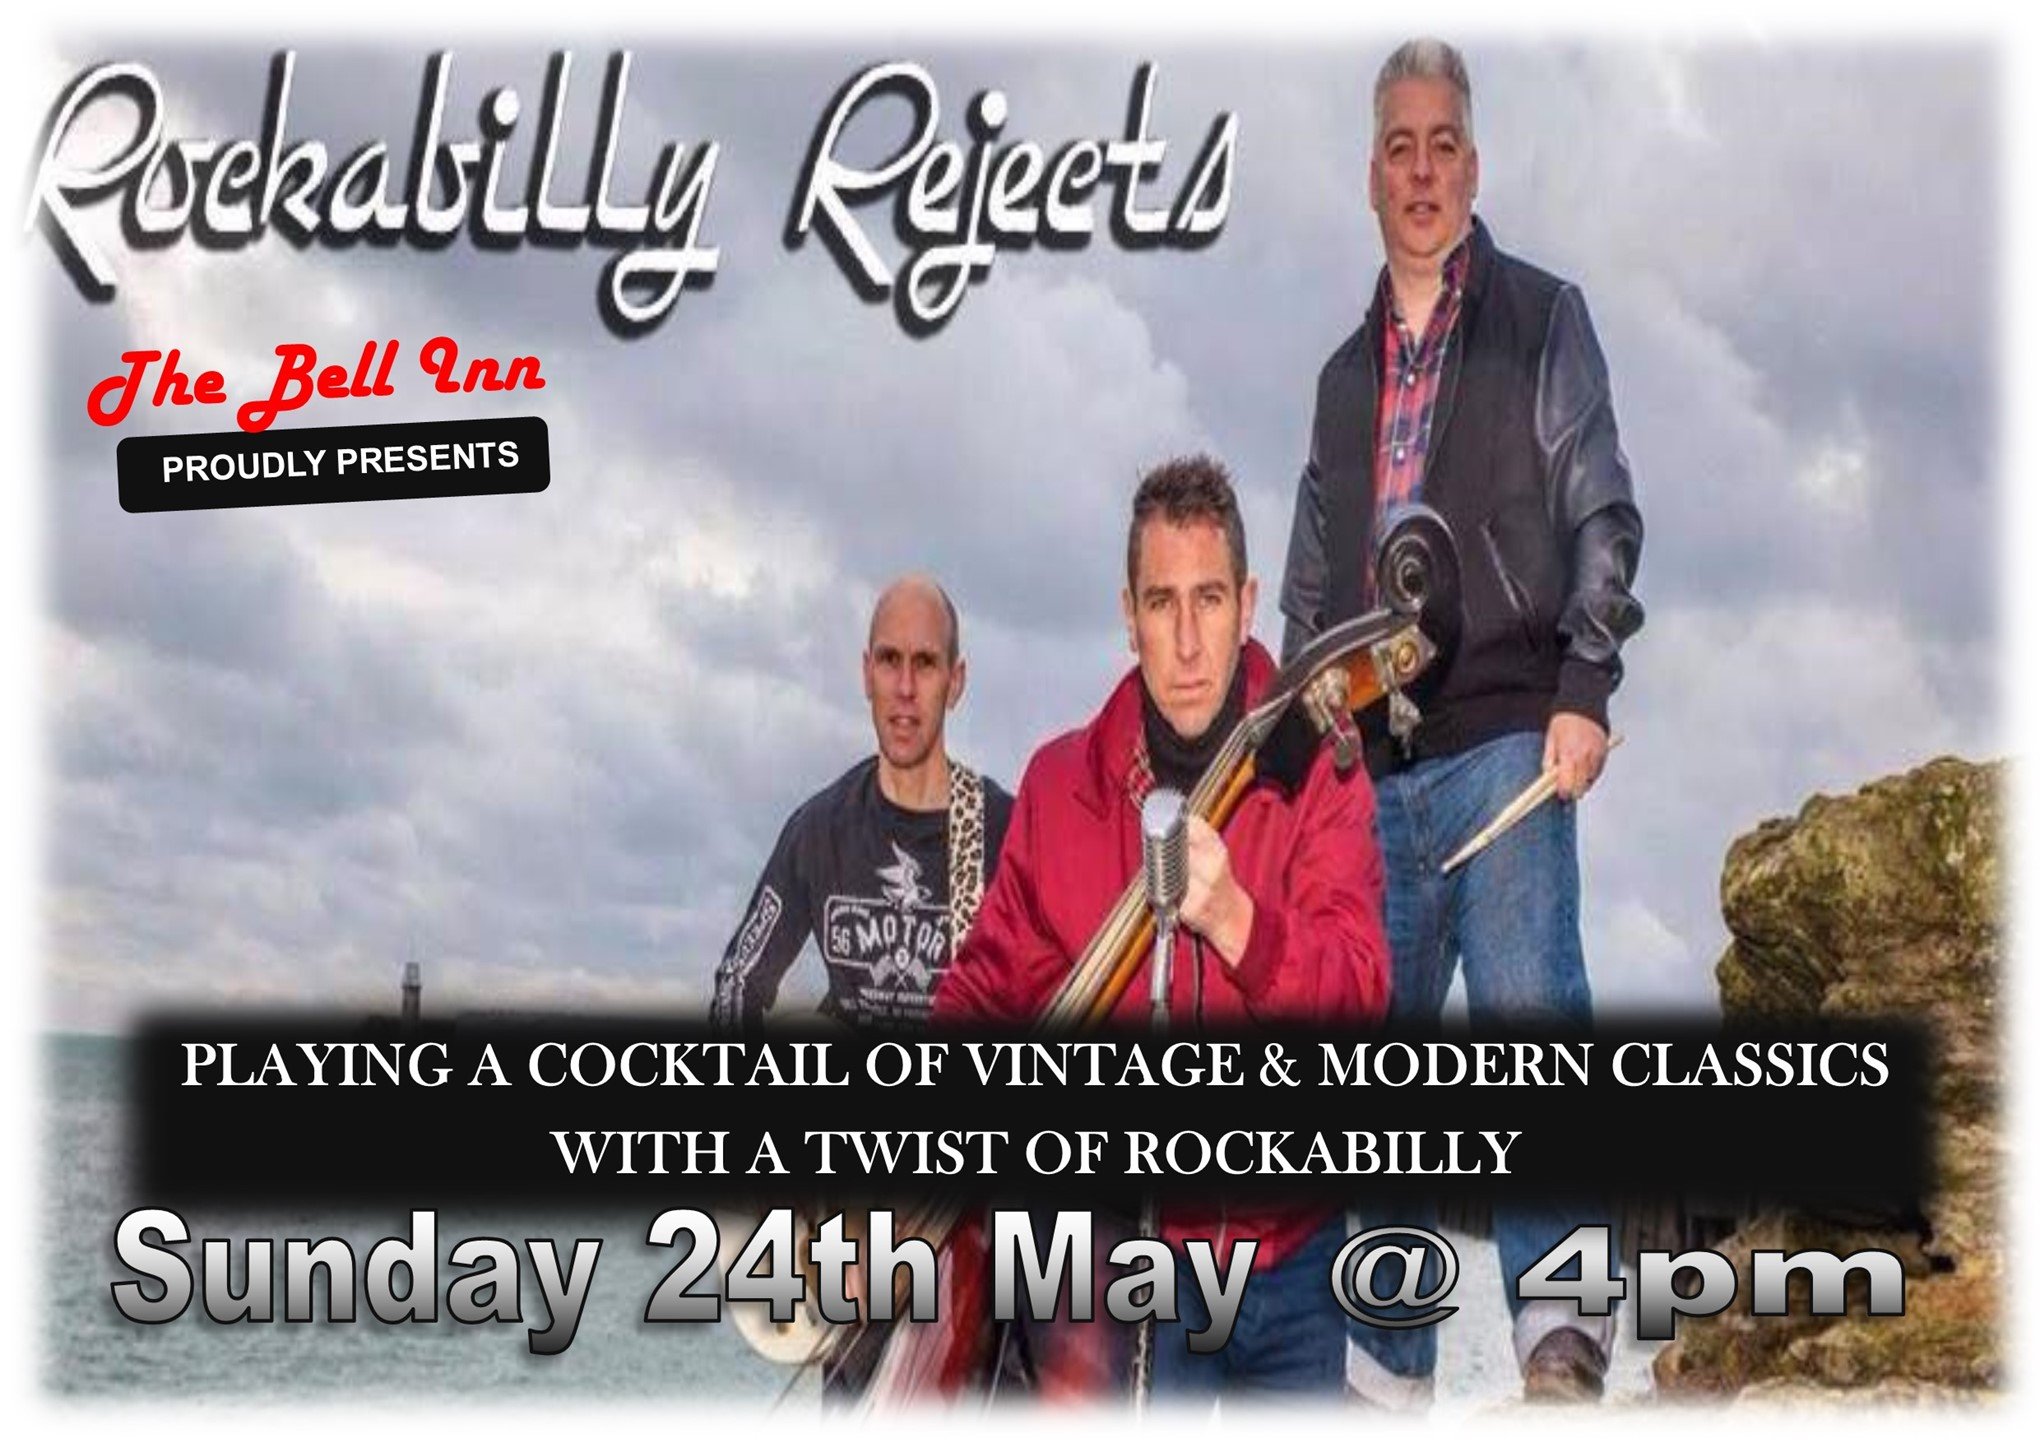 Live Music with Rockabilly Rejects